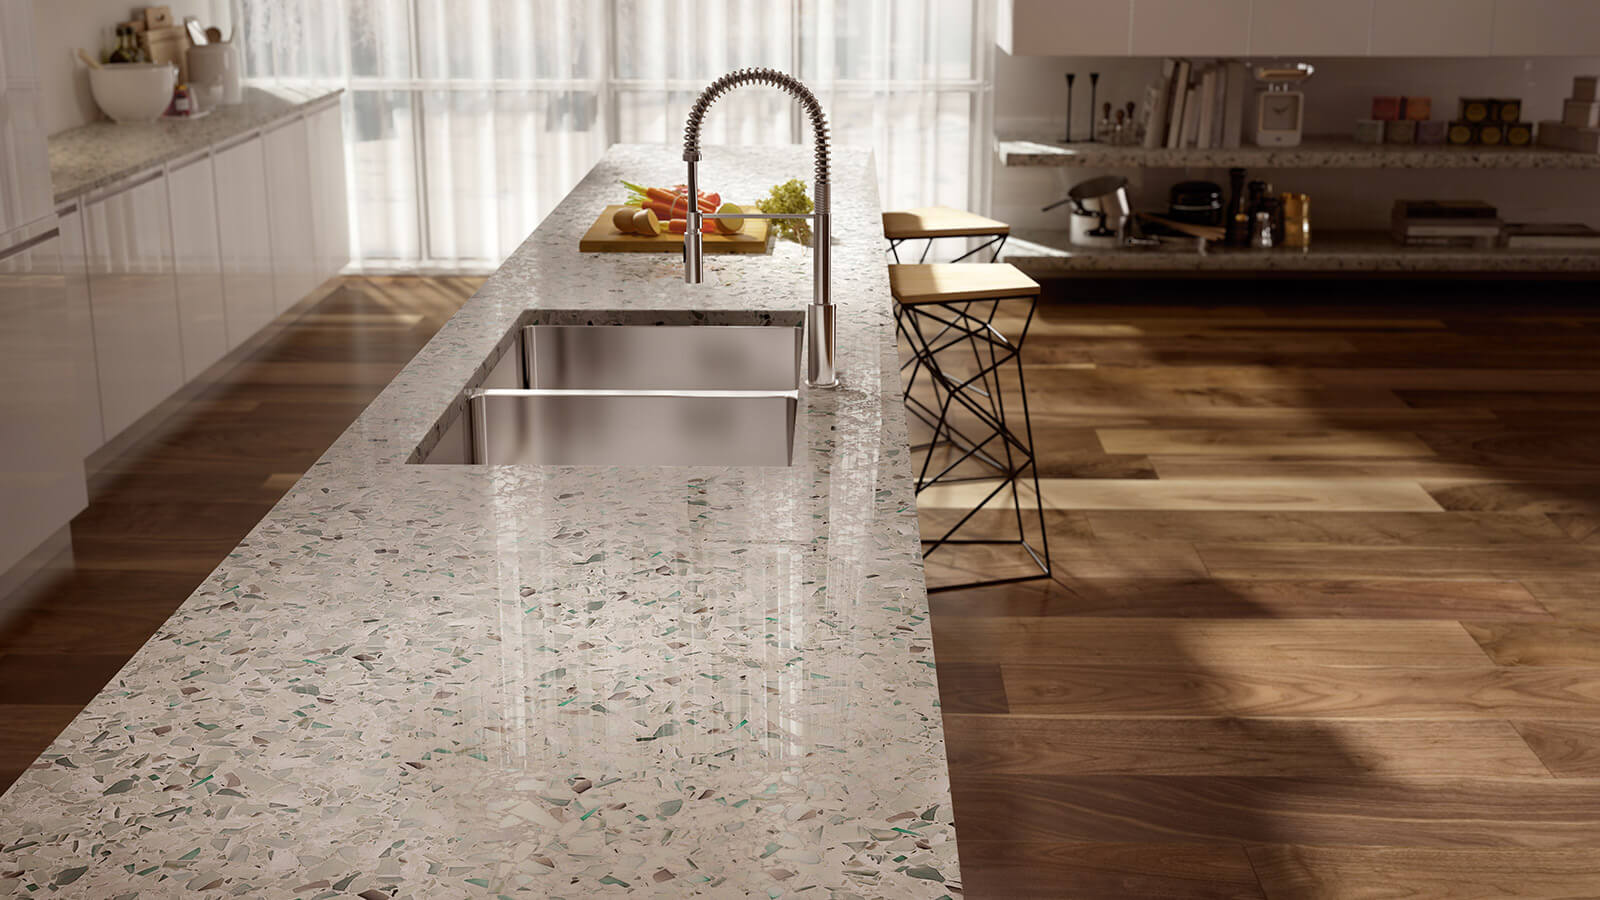 Vetrazzo Recycled Gl Countertops Mosaics Tiles Flooring And Accessories Available In The United States Canada Worldwide